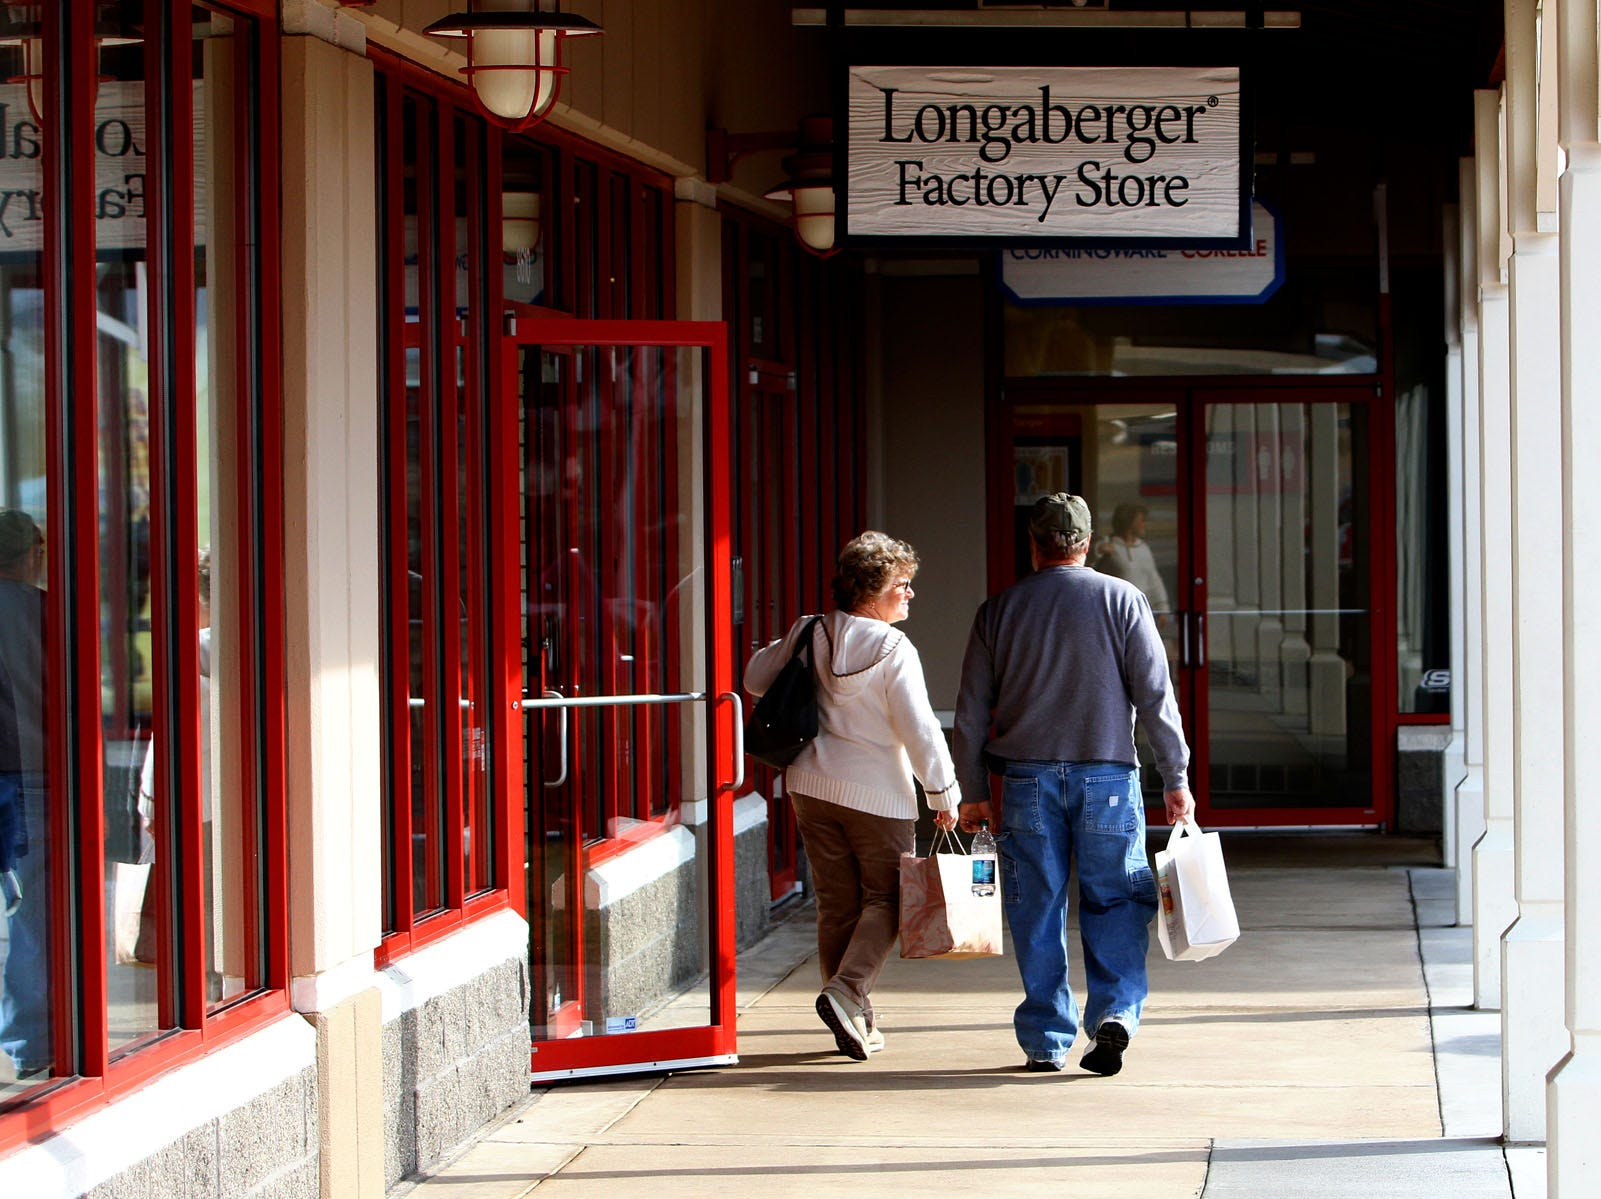 Doris and Mike Smith of Teays Valley, West Virginia leave after shopping at the Longaberger Factory Store in the Tanger Outlet Center in Jeffersonville, Ohio on Wednesday, Feb. 01, 2012.